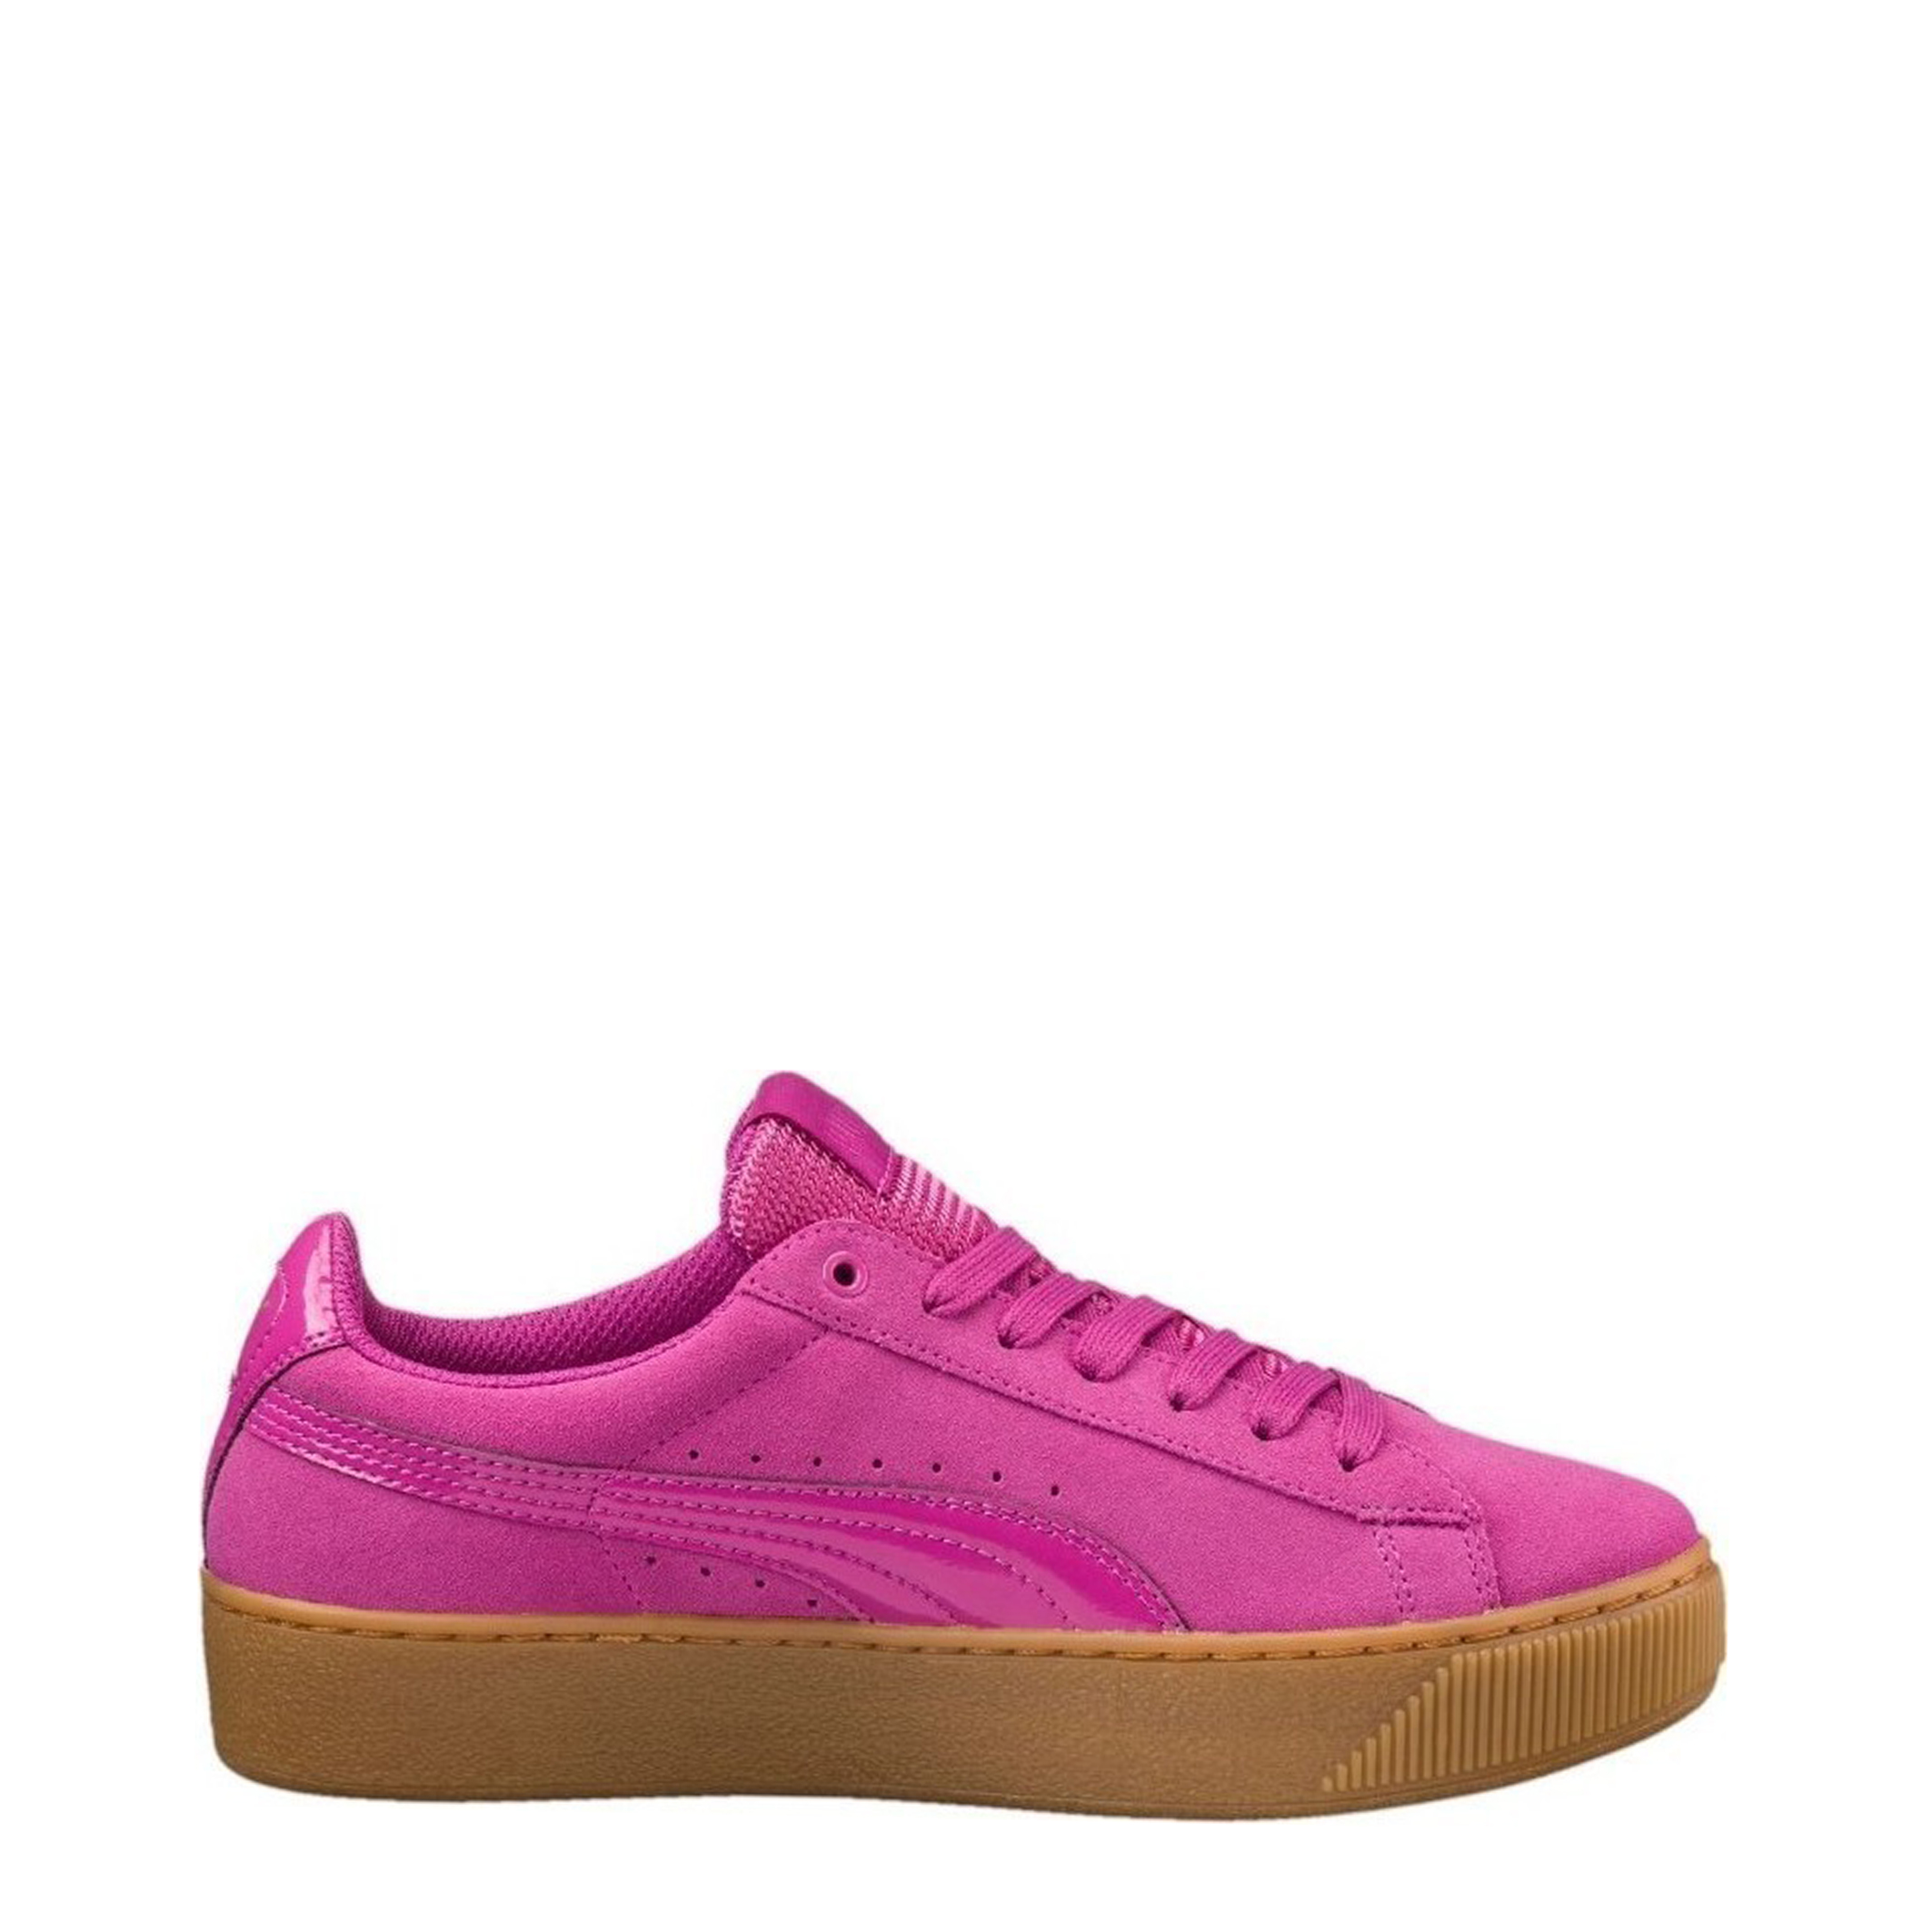 Sneakers Puma 363287 Donna Rosa 95785